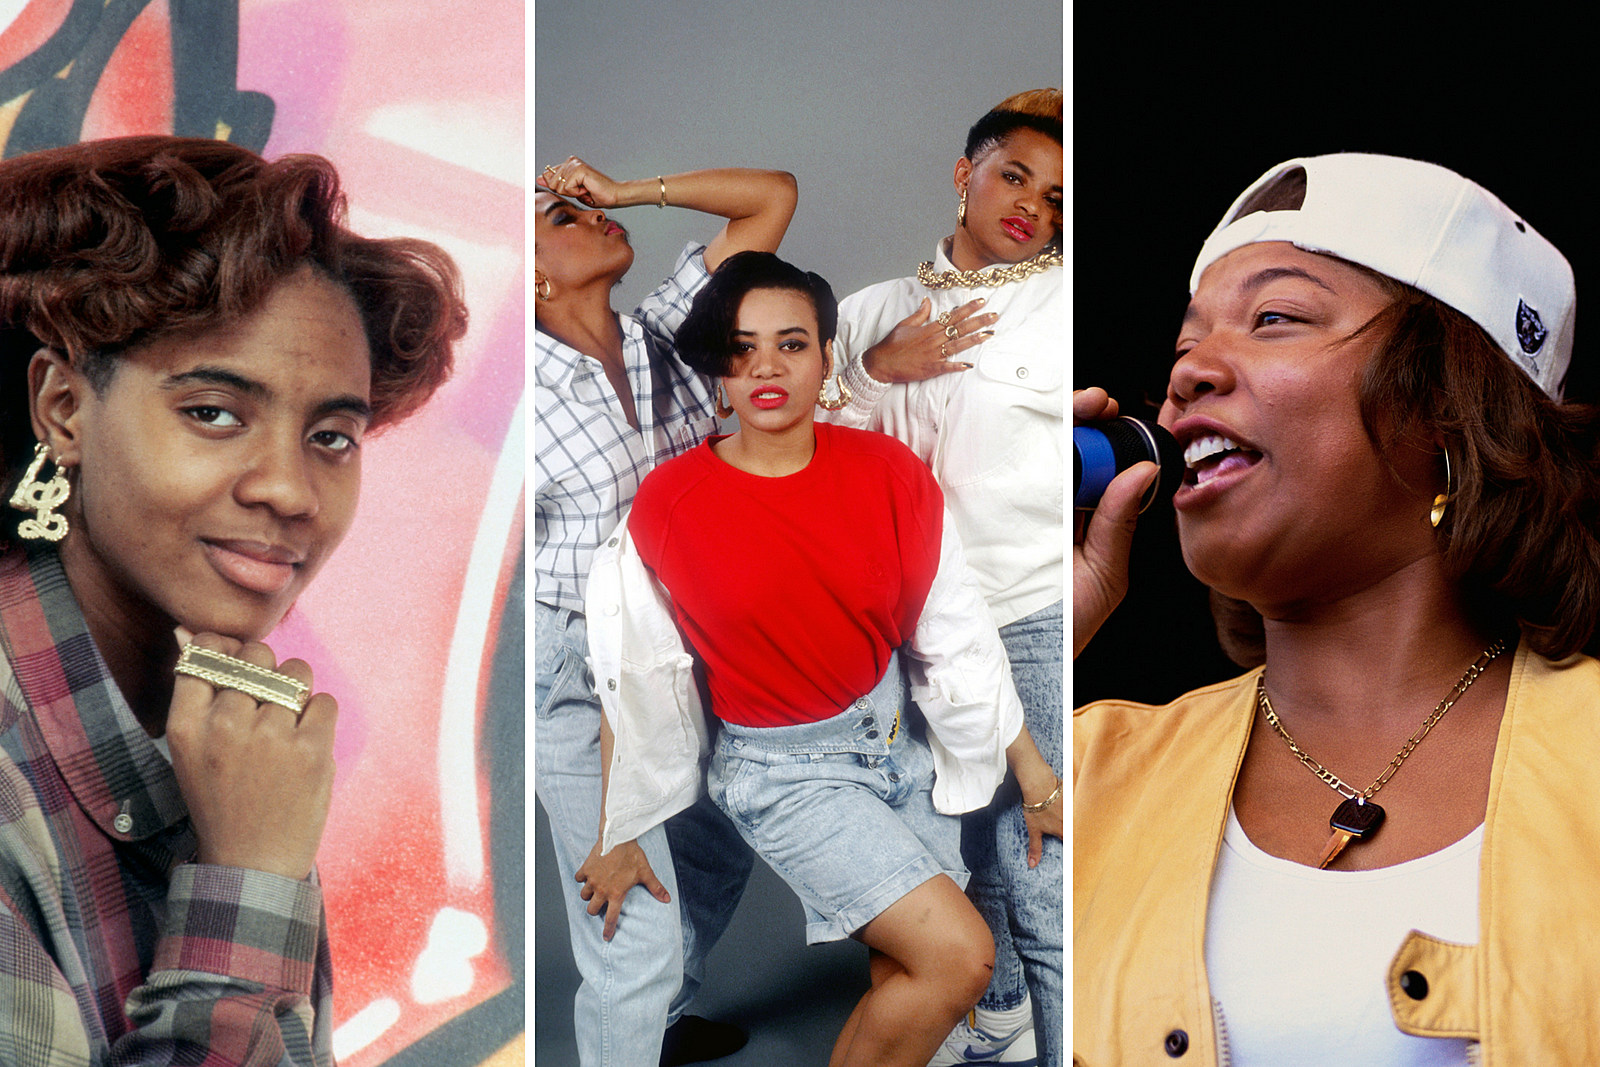 ALL HAIL THE QUEENS A Look Back at the Pioneers of Female Rap